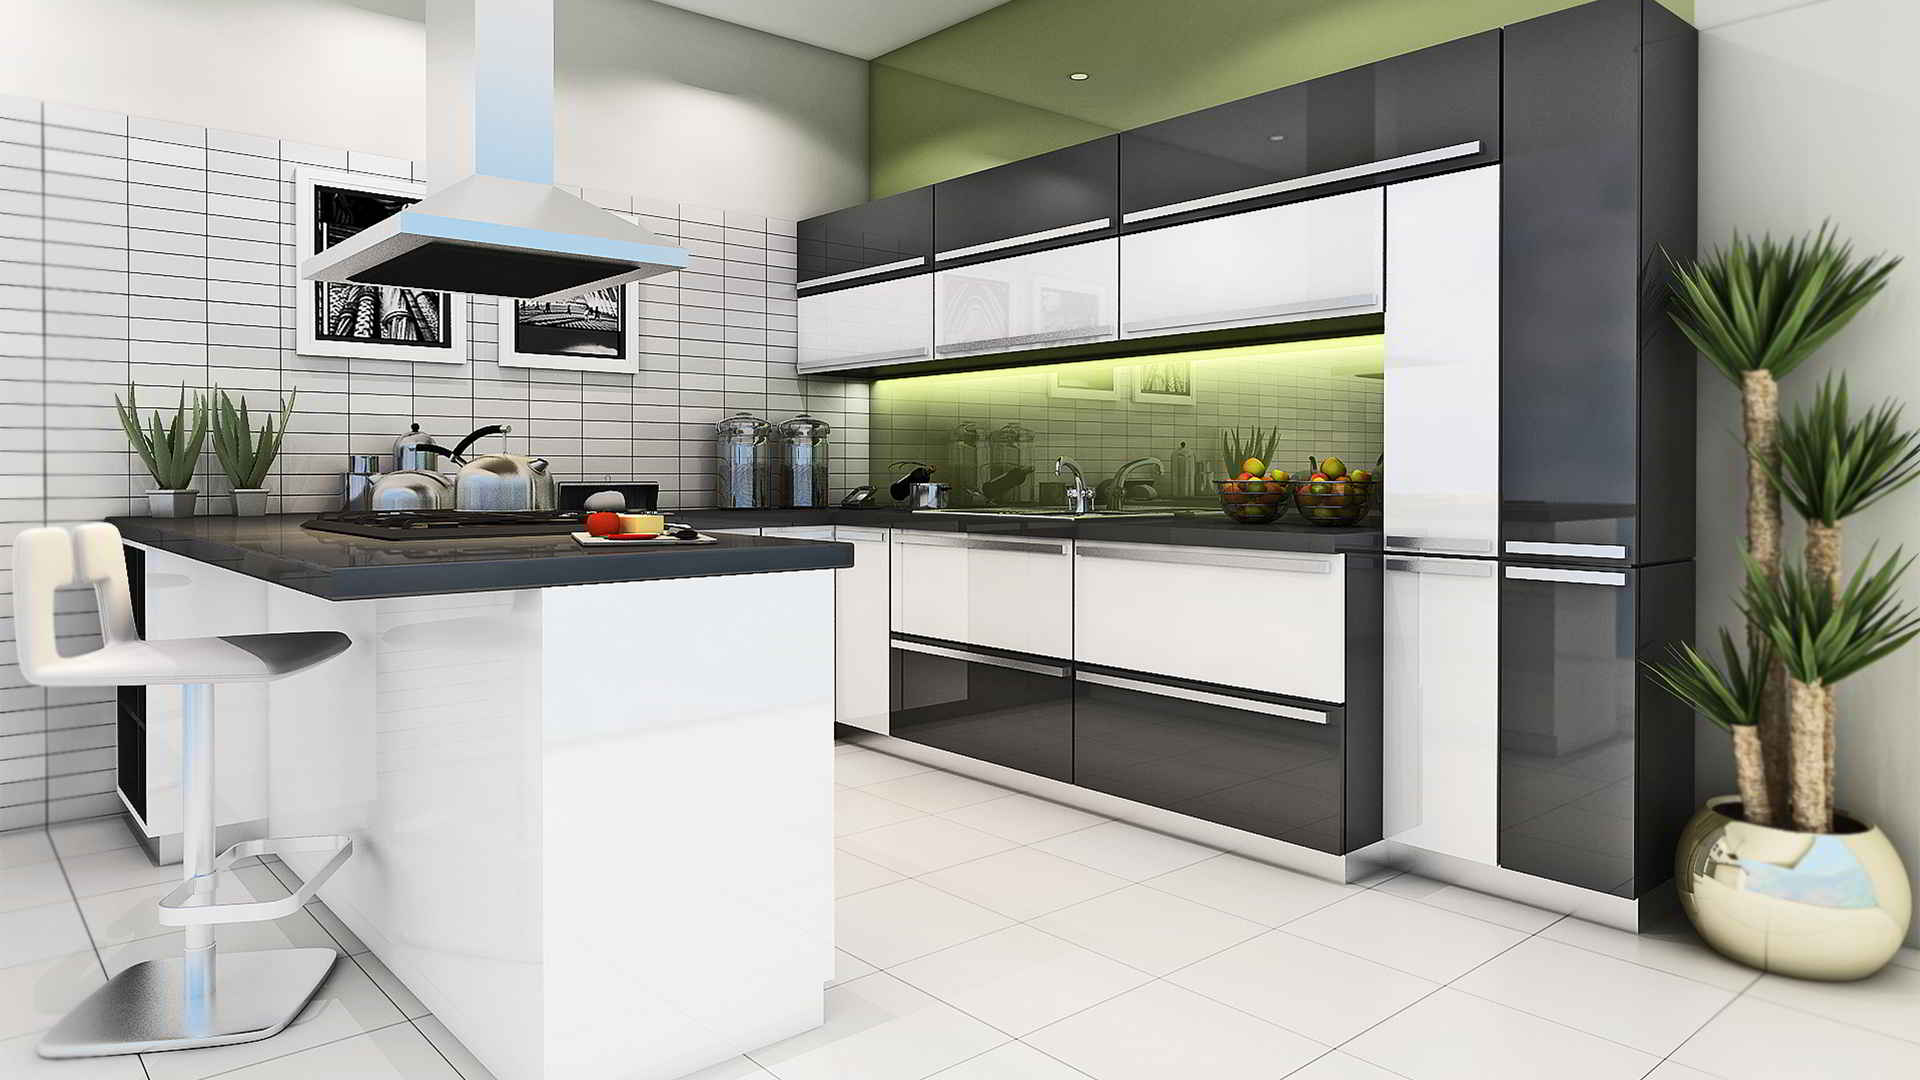 Latest indian modular kitchen design - Though The Design Looks Quite Classy And Costly People Are Found To Ignore It Because Of The Less Space Available Indian Modular Kitchen